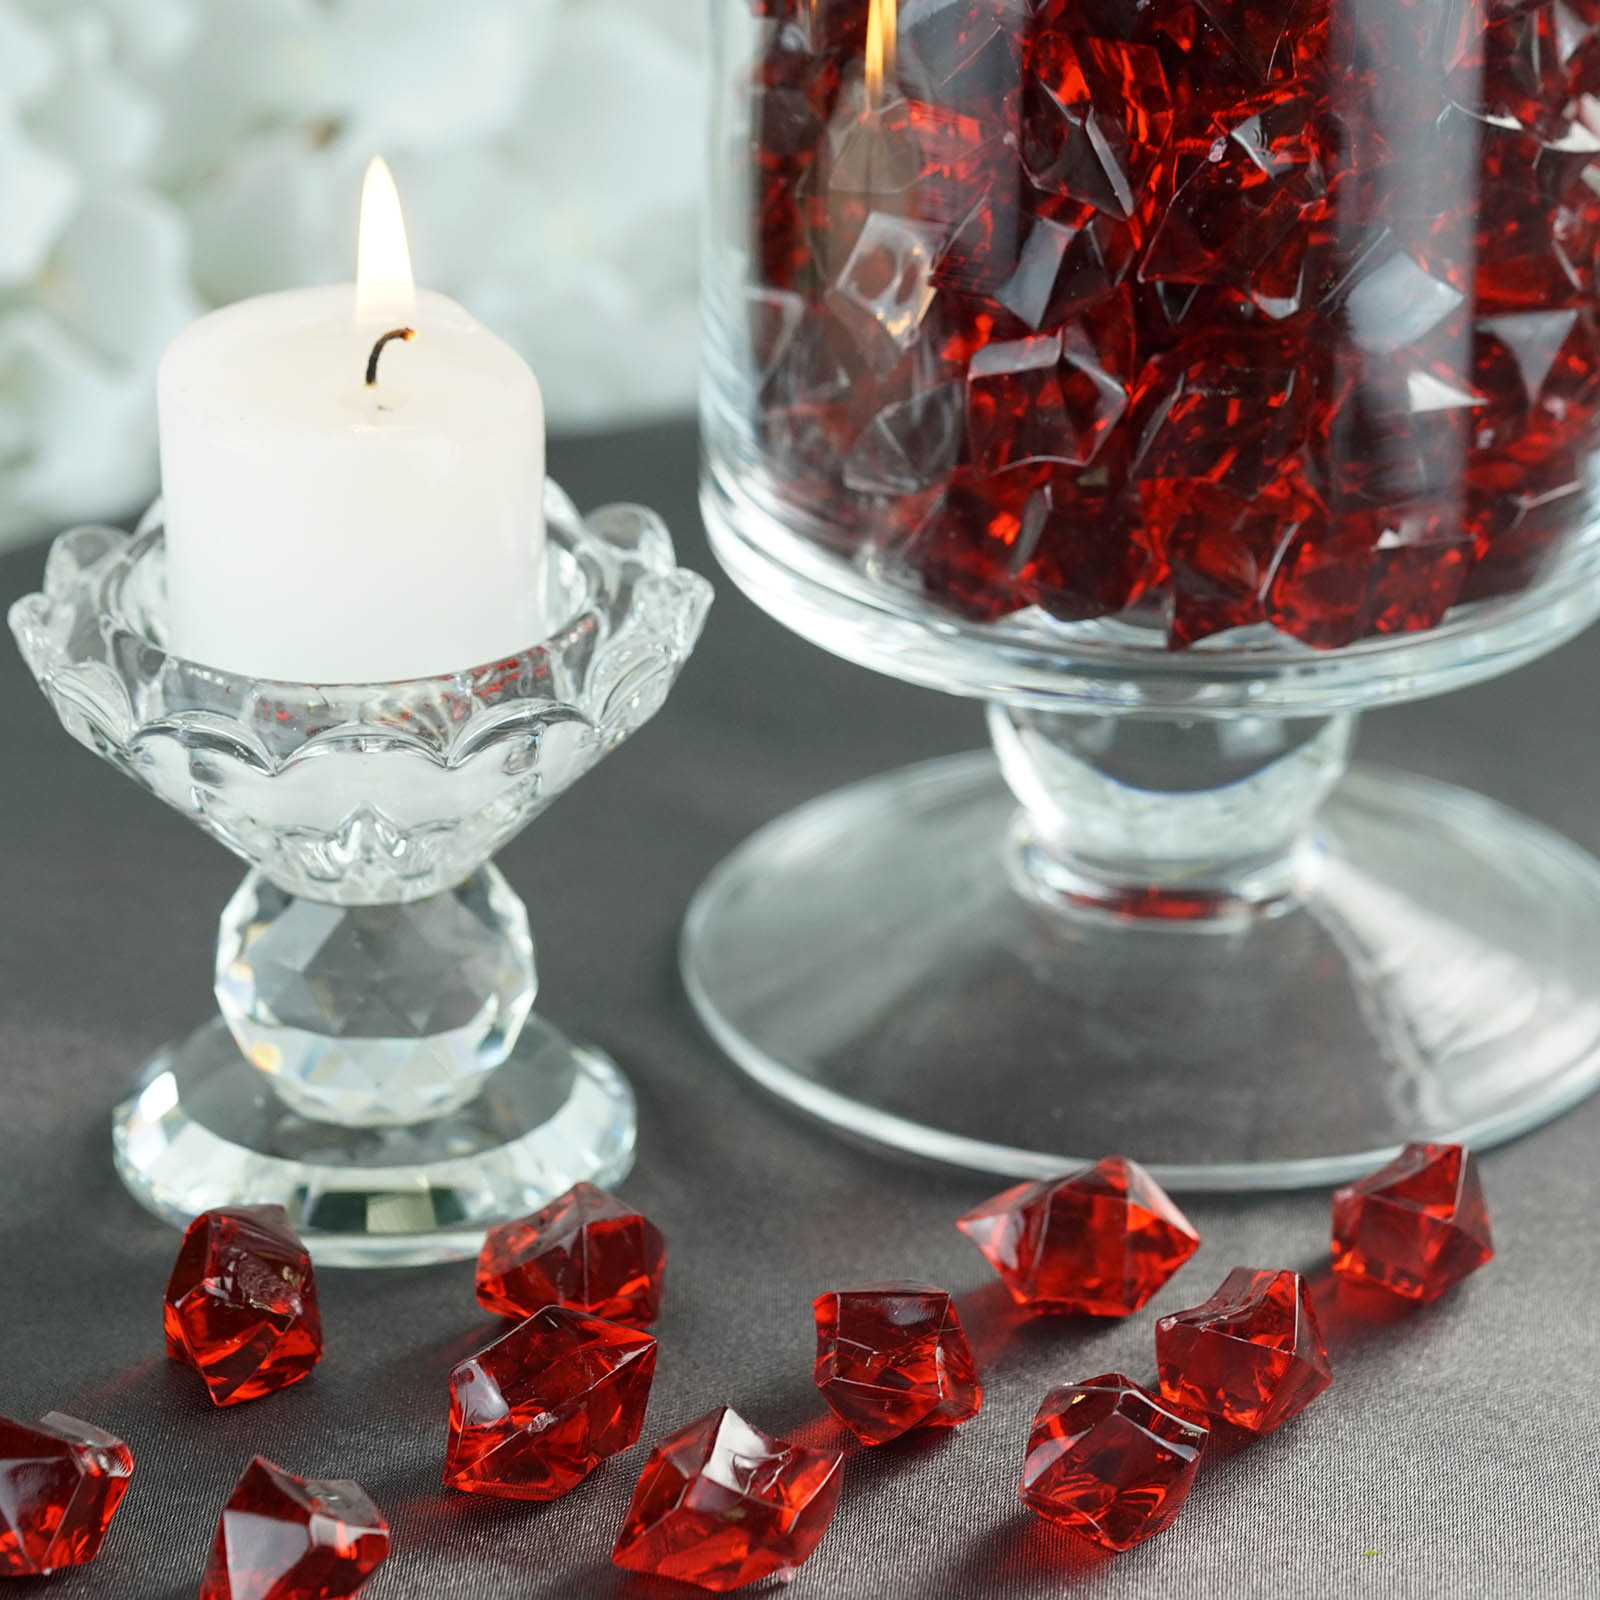 300-Acrylic-Ice-CRYSTAL-LIKE-Pieces-Wedding-Centerpieces-Decorations-Supplies thumbnail 12